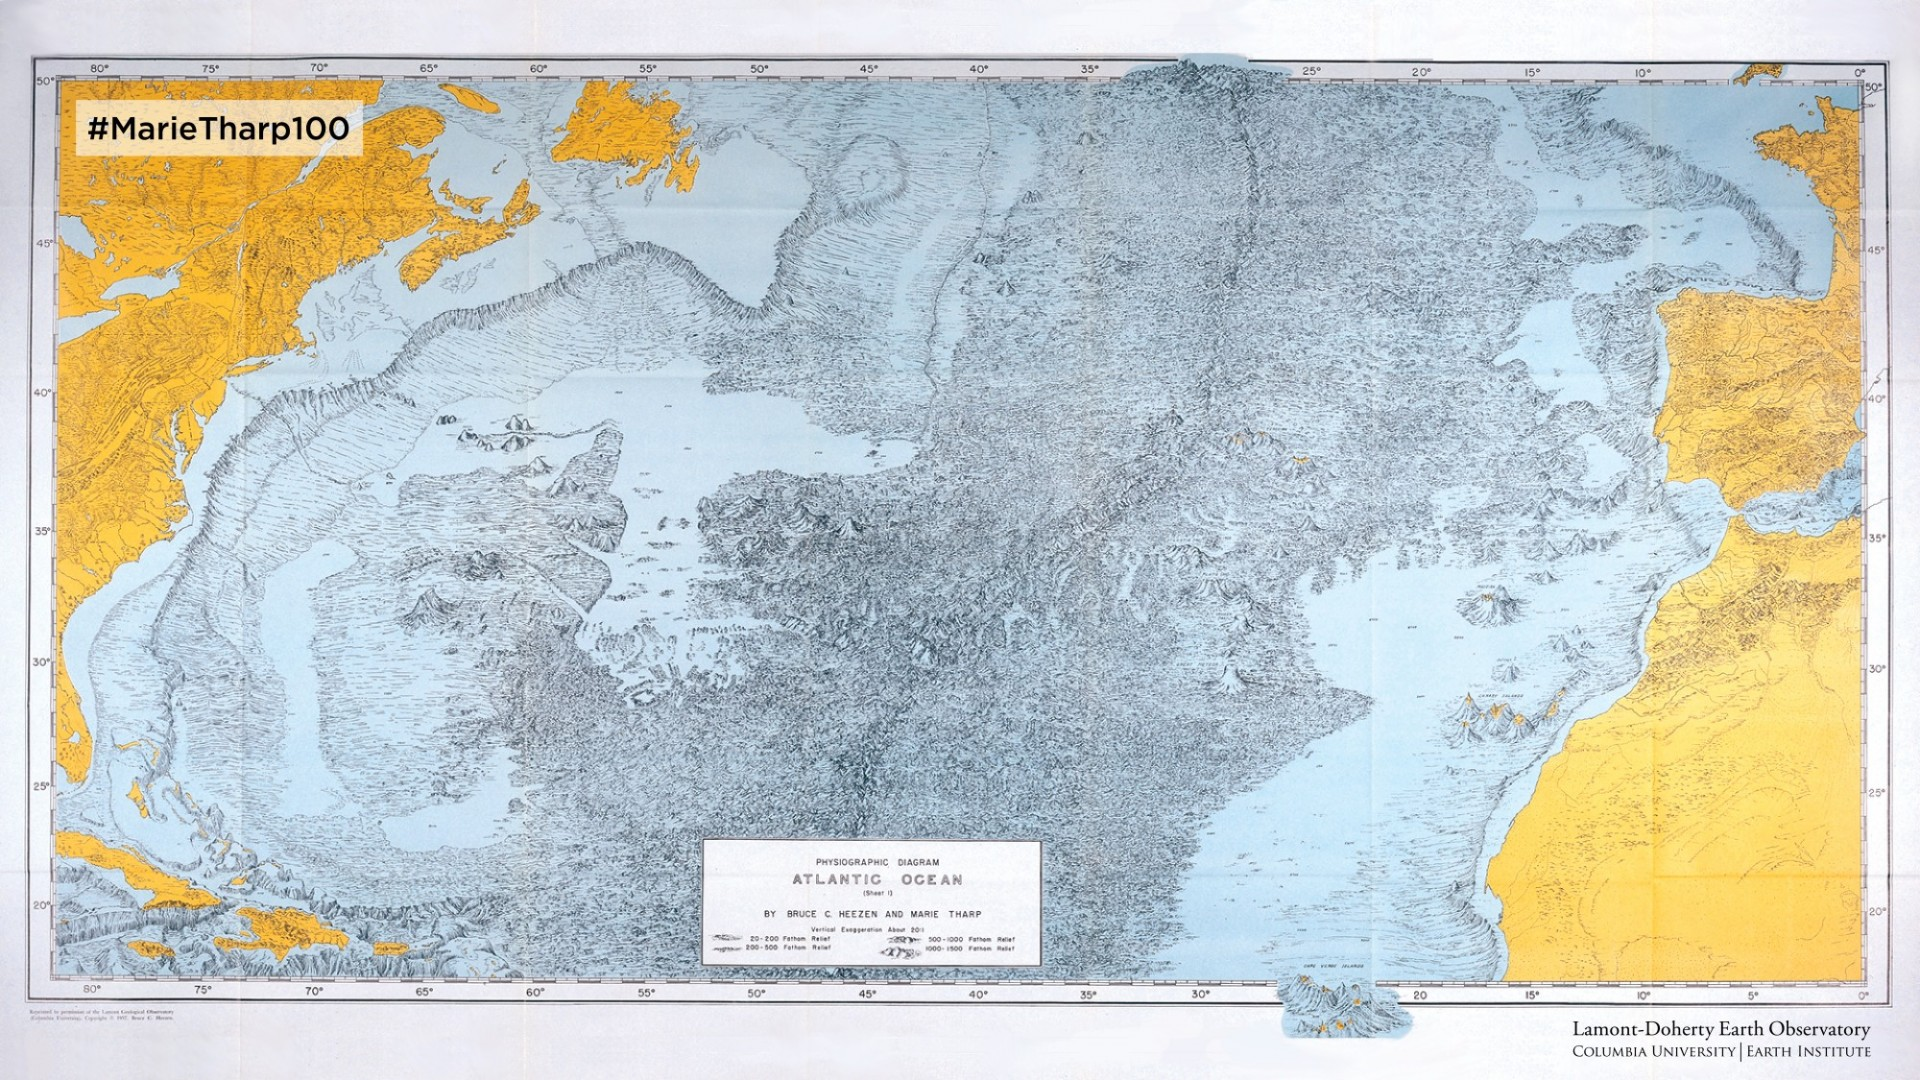 Physiographic Diagram of the North Atlantic Ocean (1959) by Heezen & Tharp